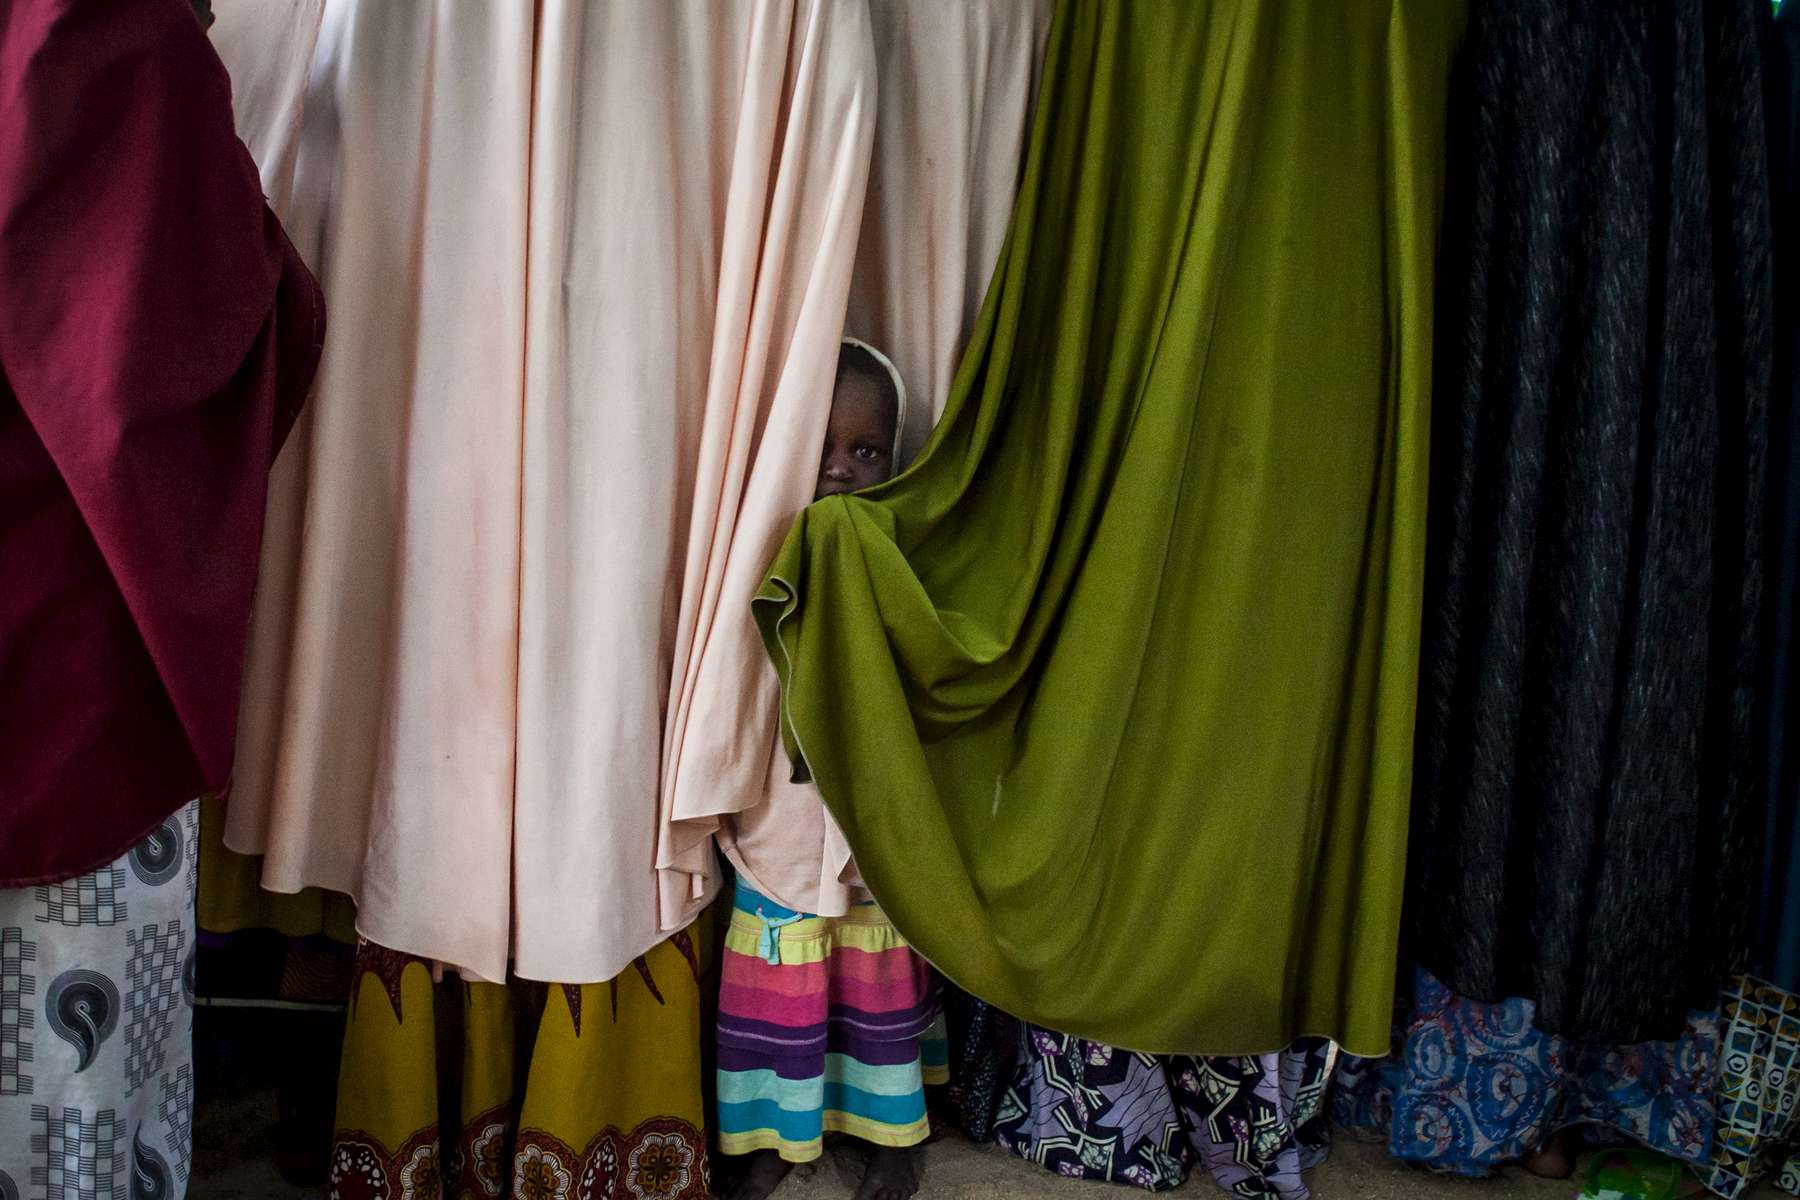 A young girl, whose mother was married to a Boko Haram commander, hides behind chadors at a detention center in Maiduguri, Nigeria on Thursday, June 16, 2016. The Nigerian military has detained hundreds of people, many are women and children, during their campaign against Boko Haram. Many innocent people have died while in custody while others are never heard from again.